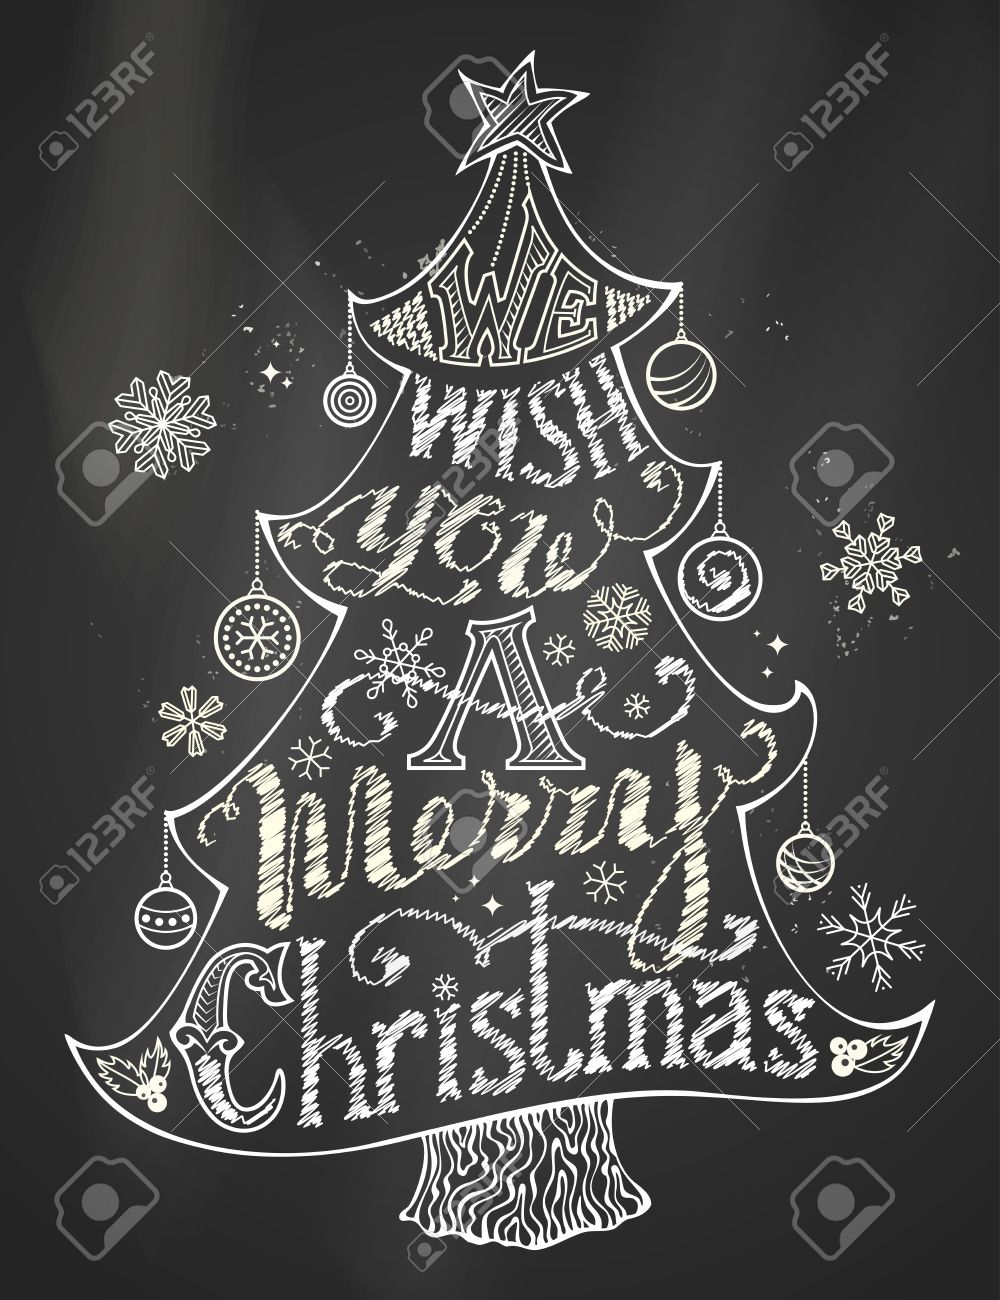 Black And White Illustration We Wish You A Merry Christmas Chalk Lettering In Tree Silhouette On